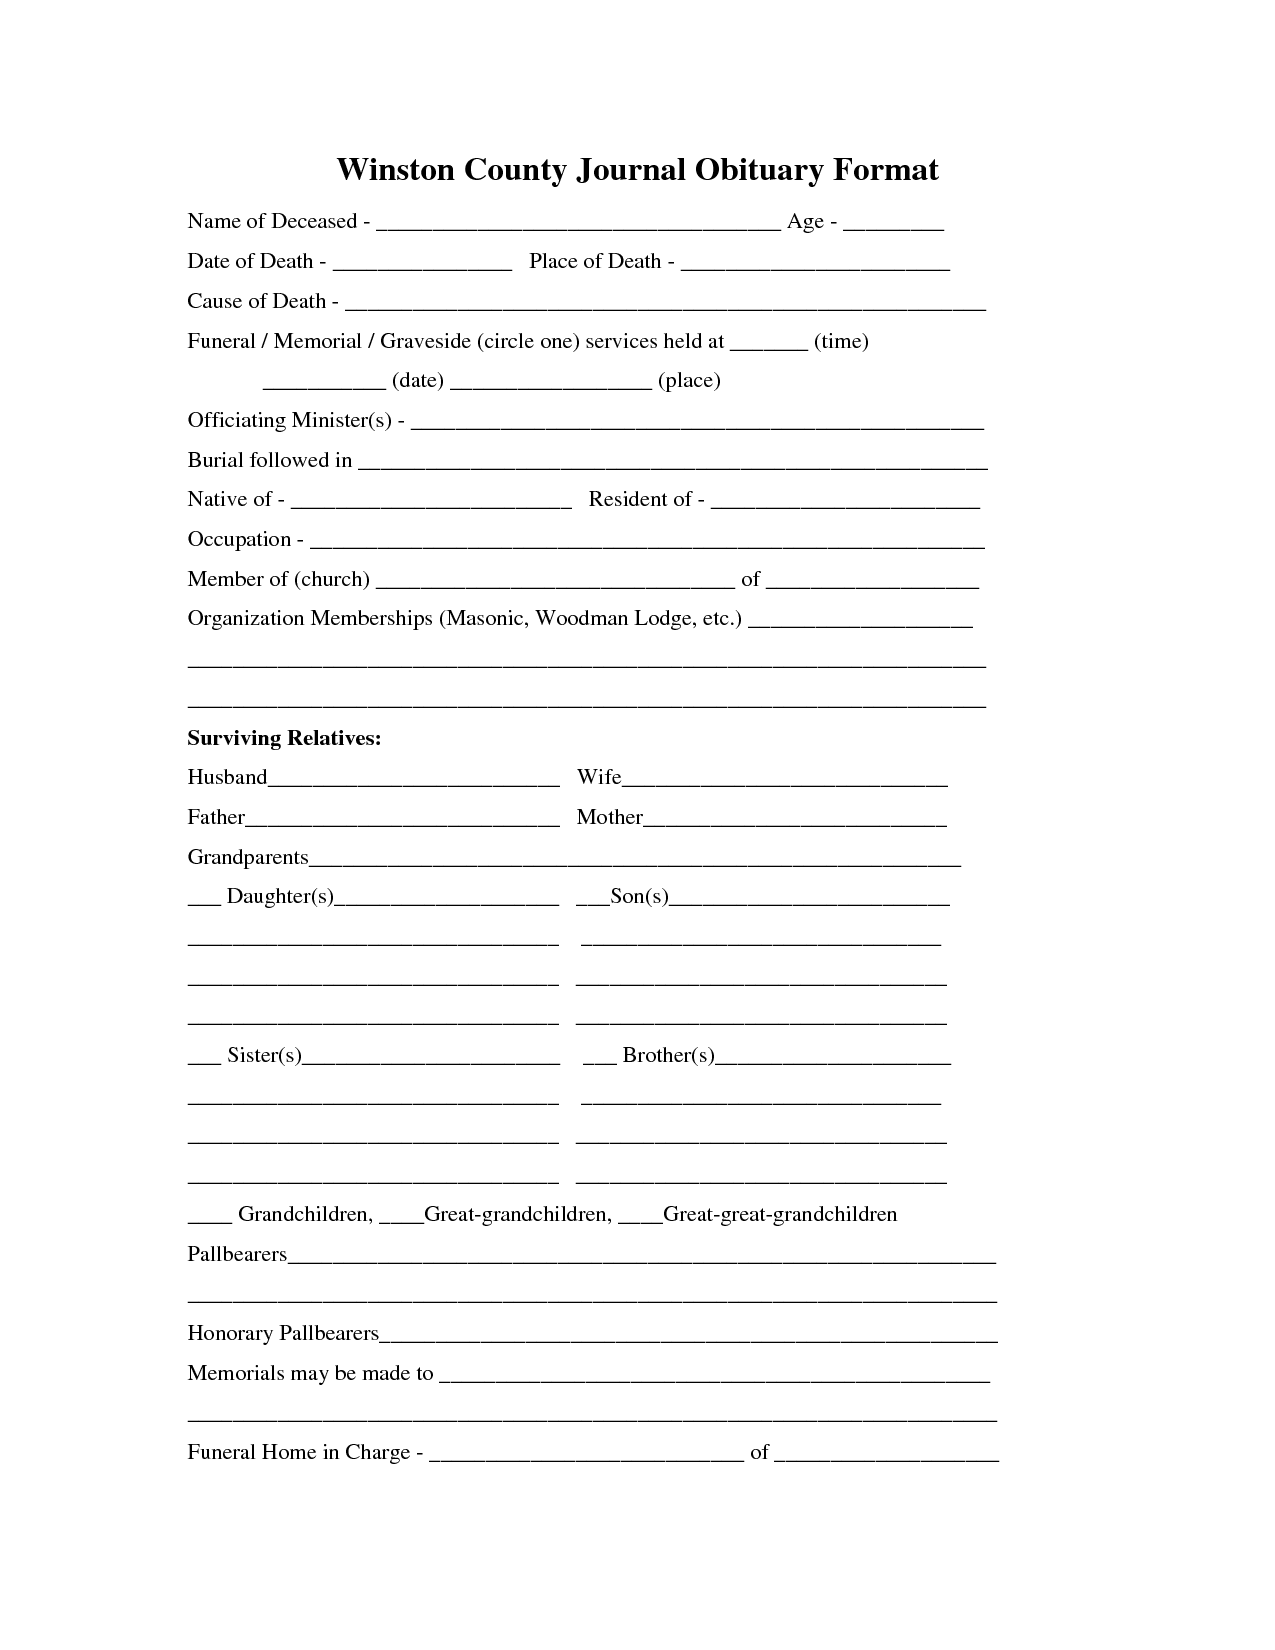 Printable Obituary Template | Fill In The Blank Obituary Template ...